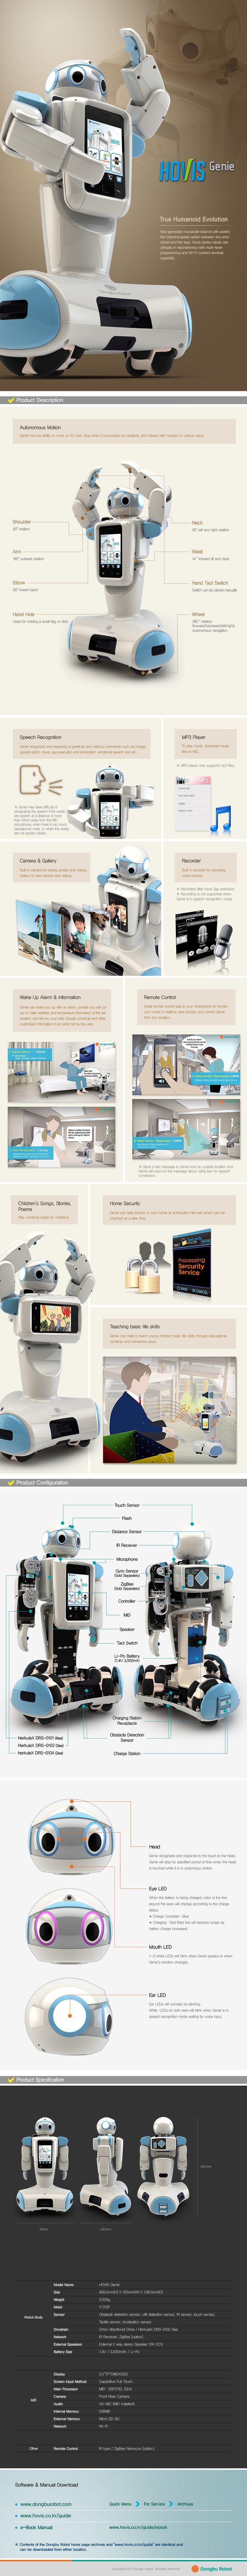 Dongbu Robot: HOVIS Genie An inspiration, though in uberpunk, robots feature far less than smart tech, IoT, and AIs.